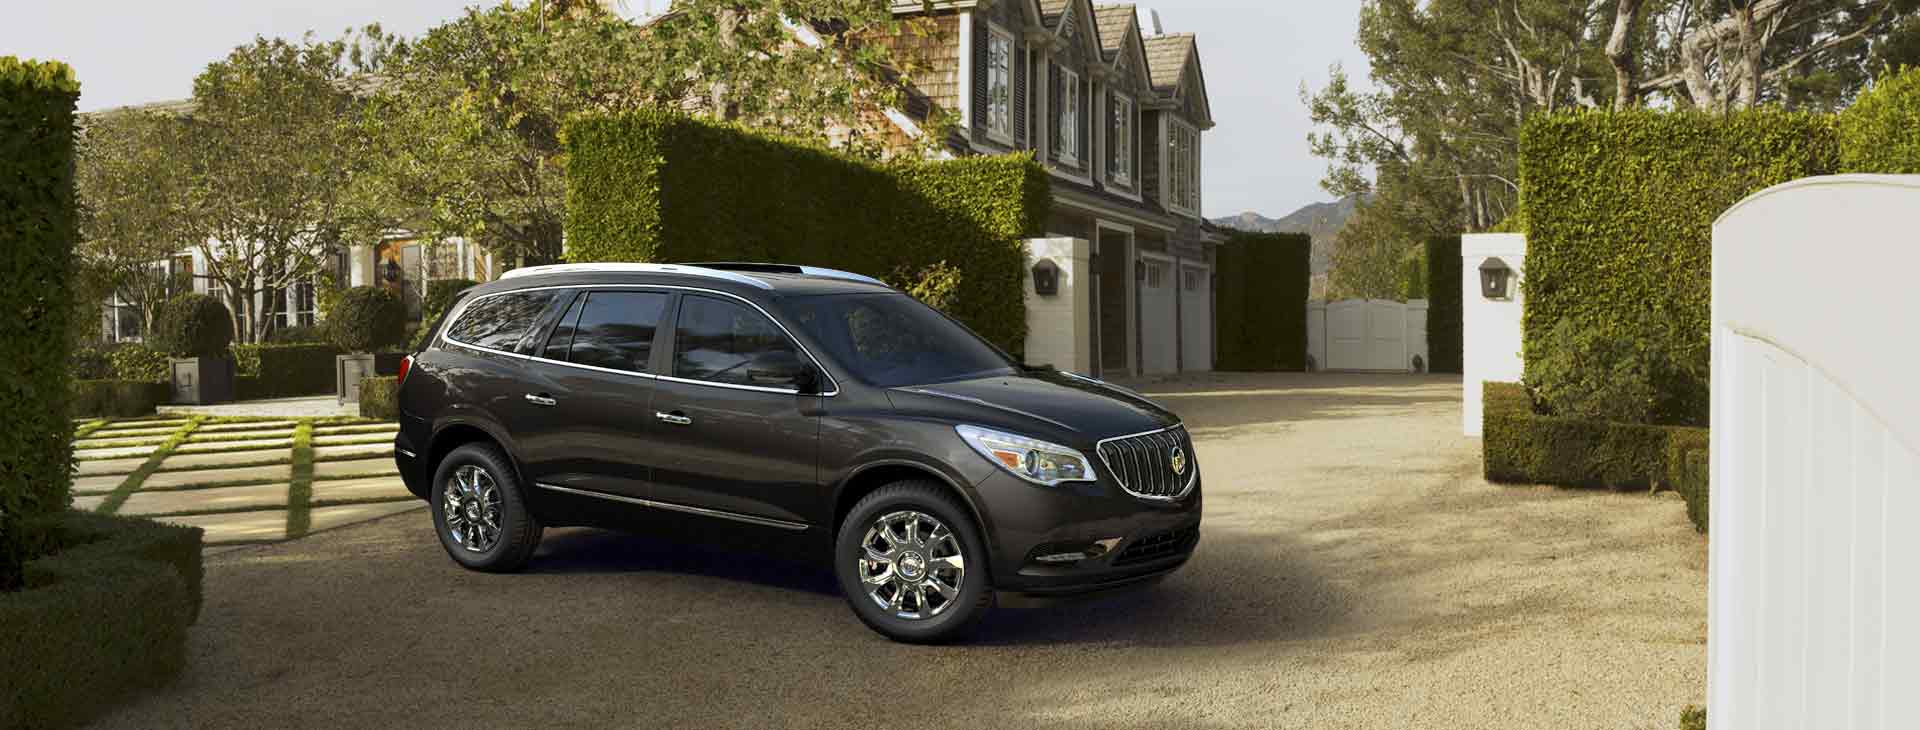 2016 buick enclave colors arkansastrucks. Black Bedroom Furniture Sets. Home Design Ideas